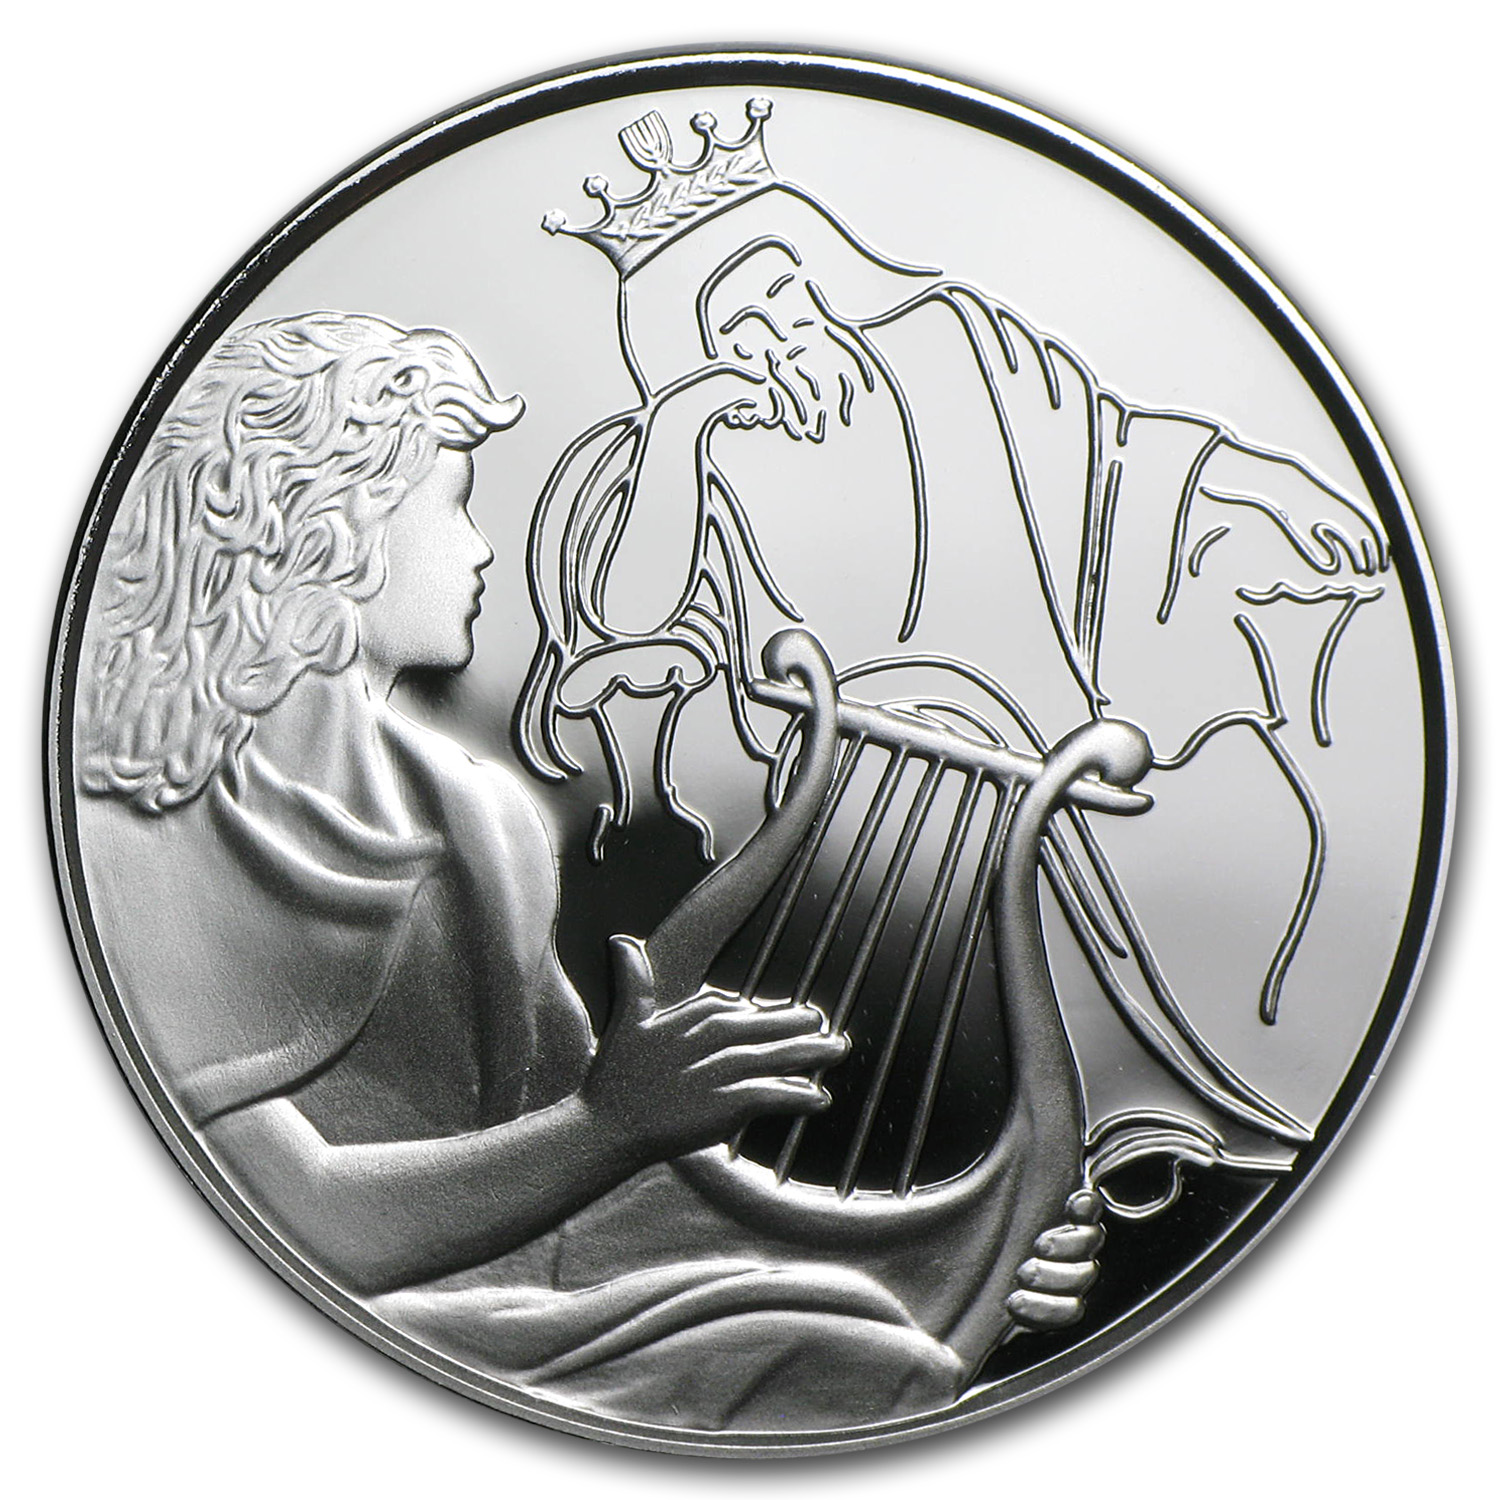 2013 Israel David Playing for Saul Silver 1 NIS Proof